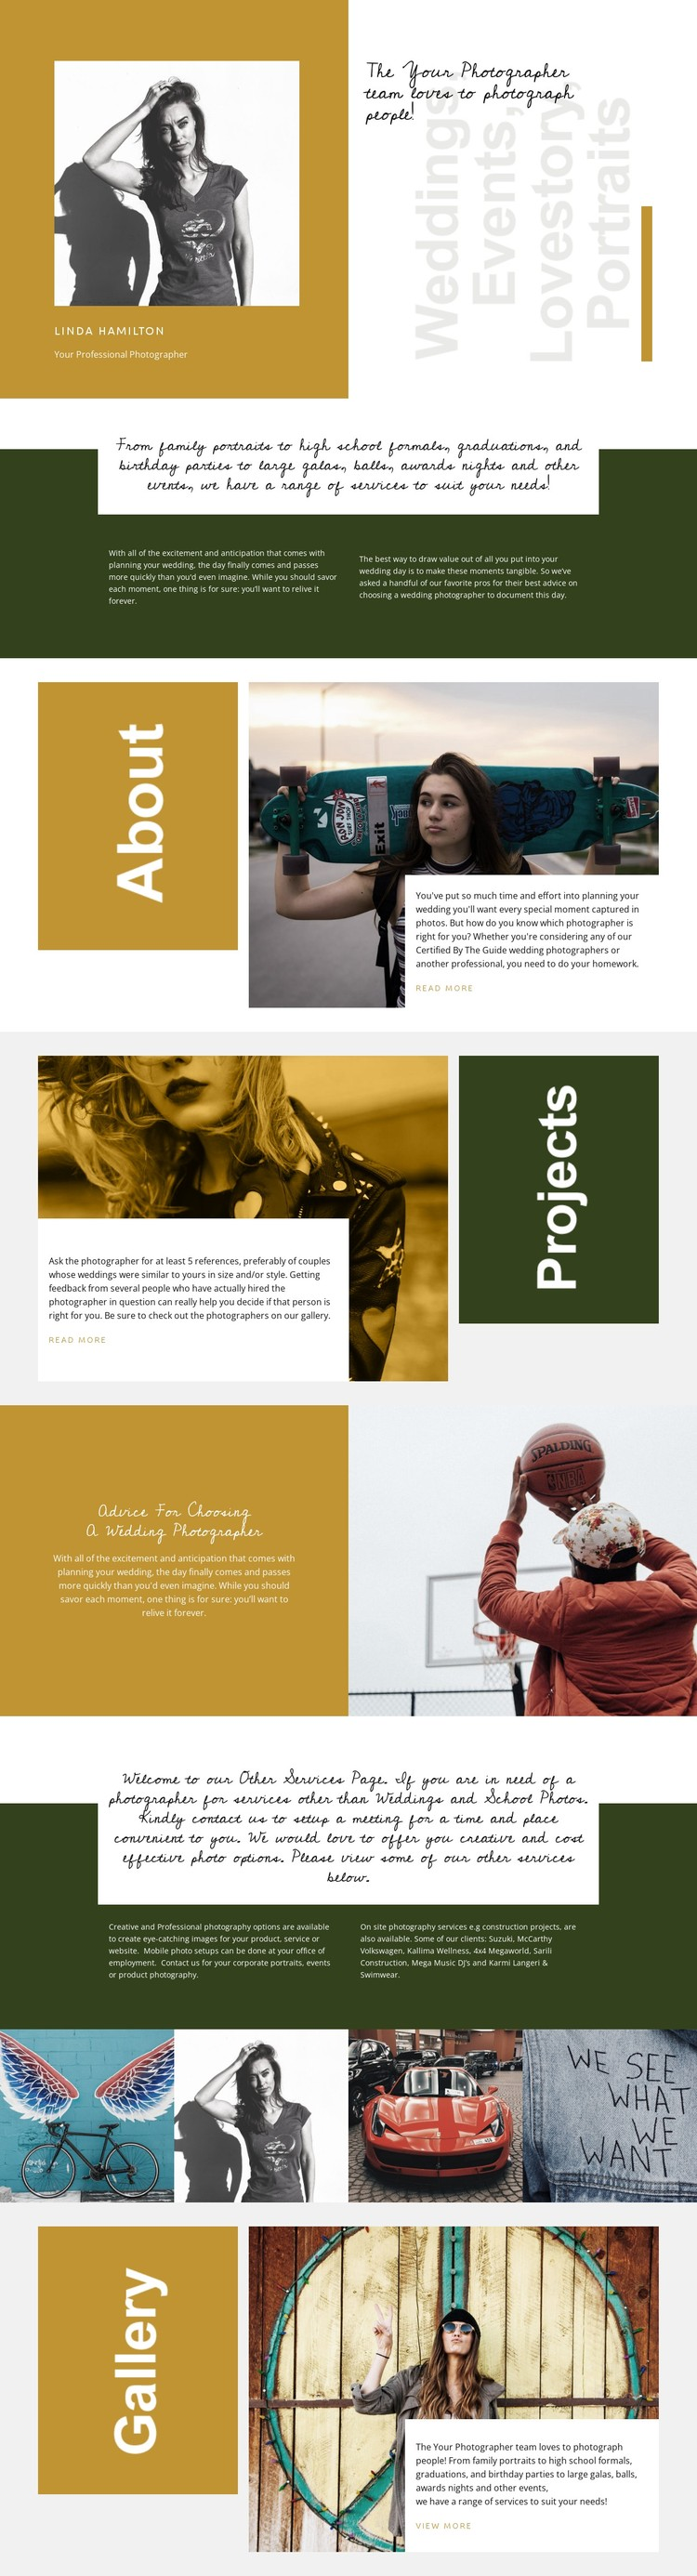 Fashion photography courses Static Site Generator